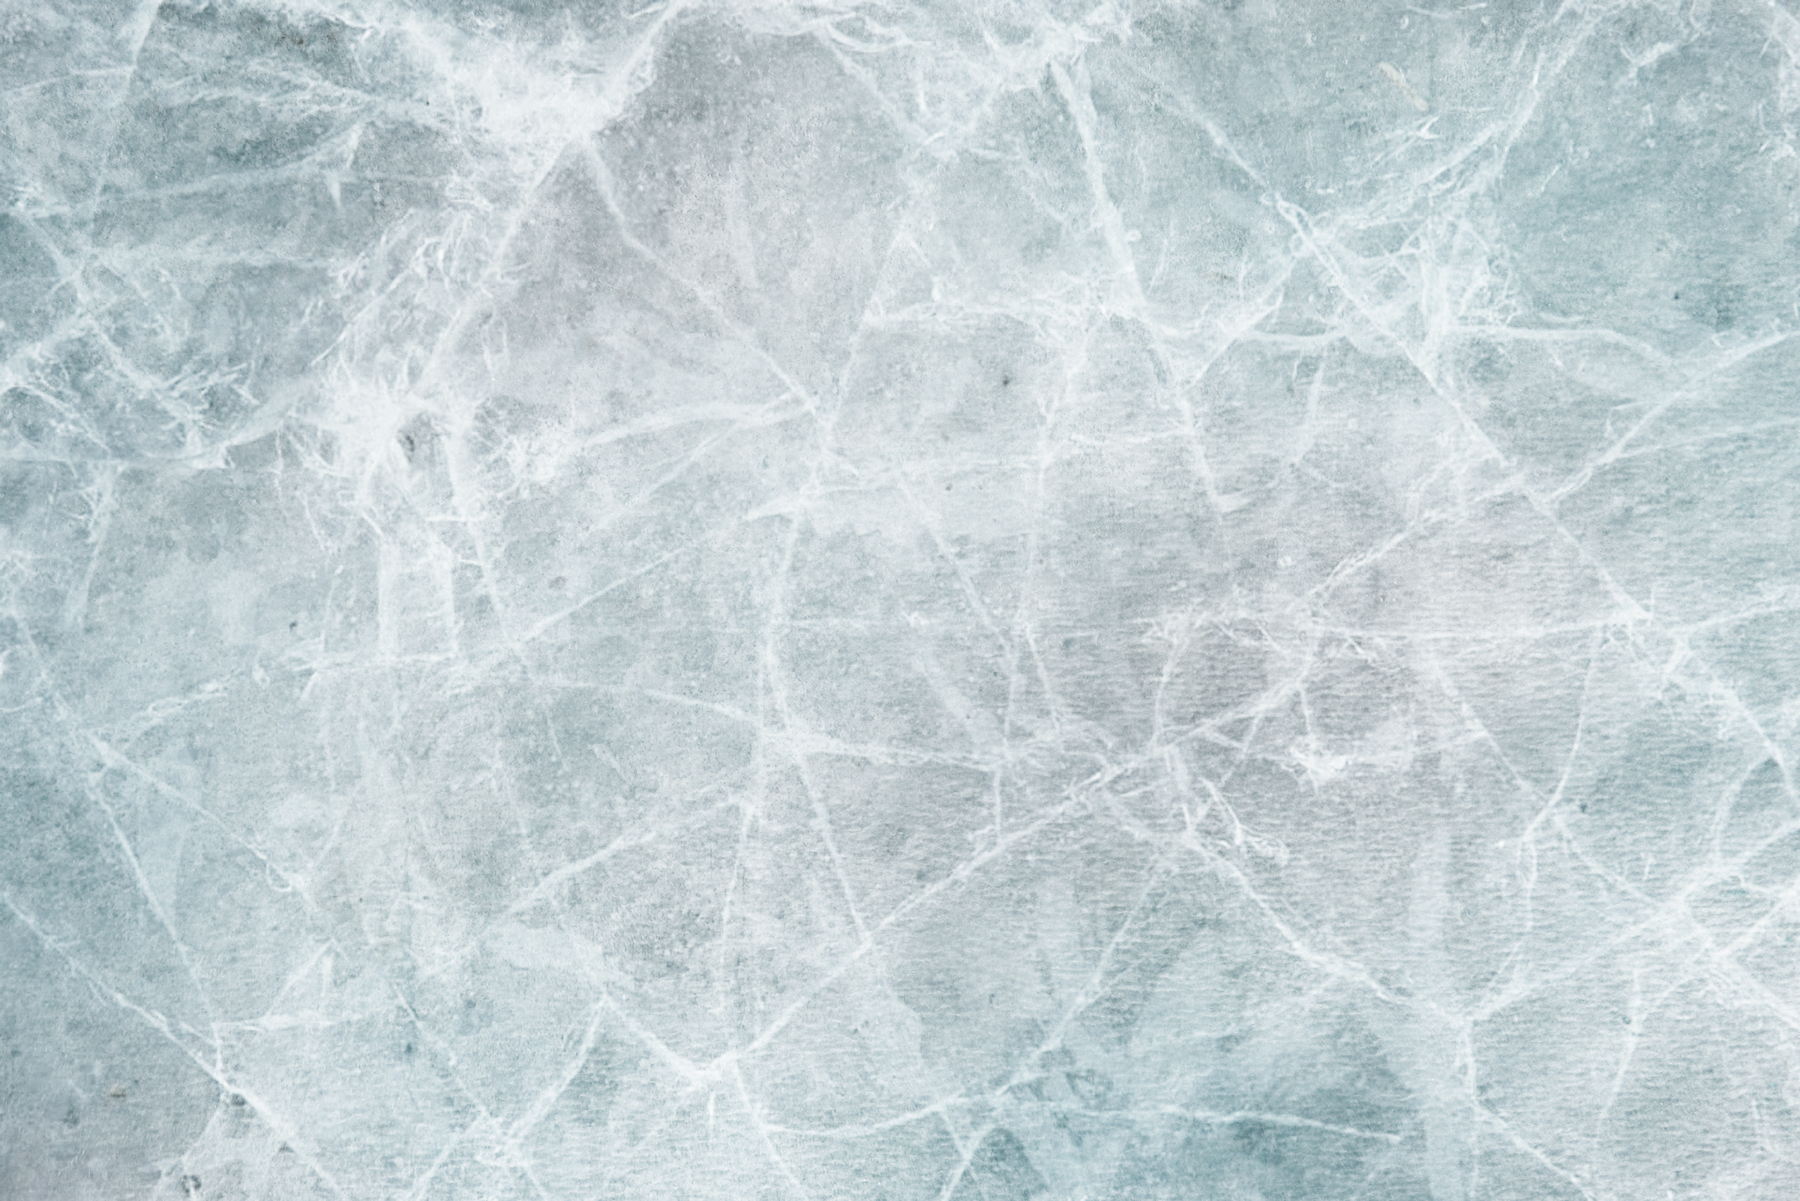 Hd Ice Wallpapers Pixelstalknet